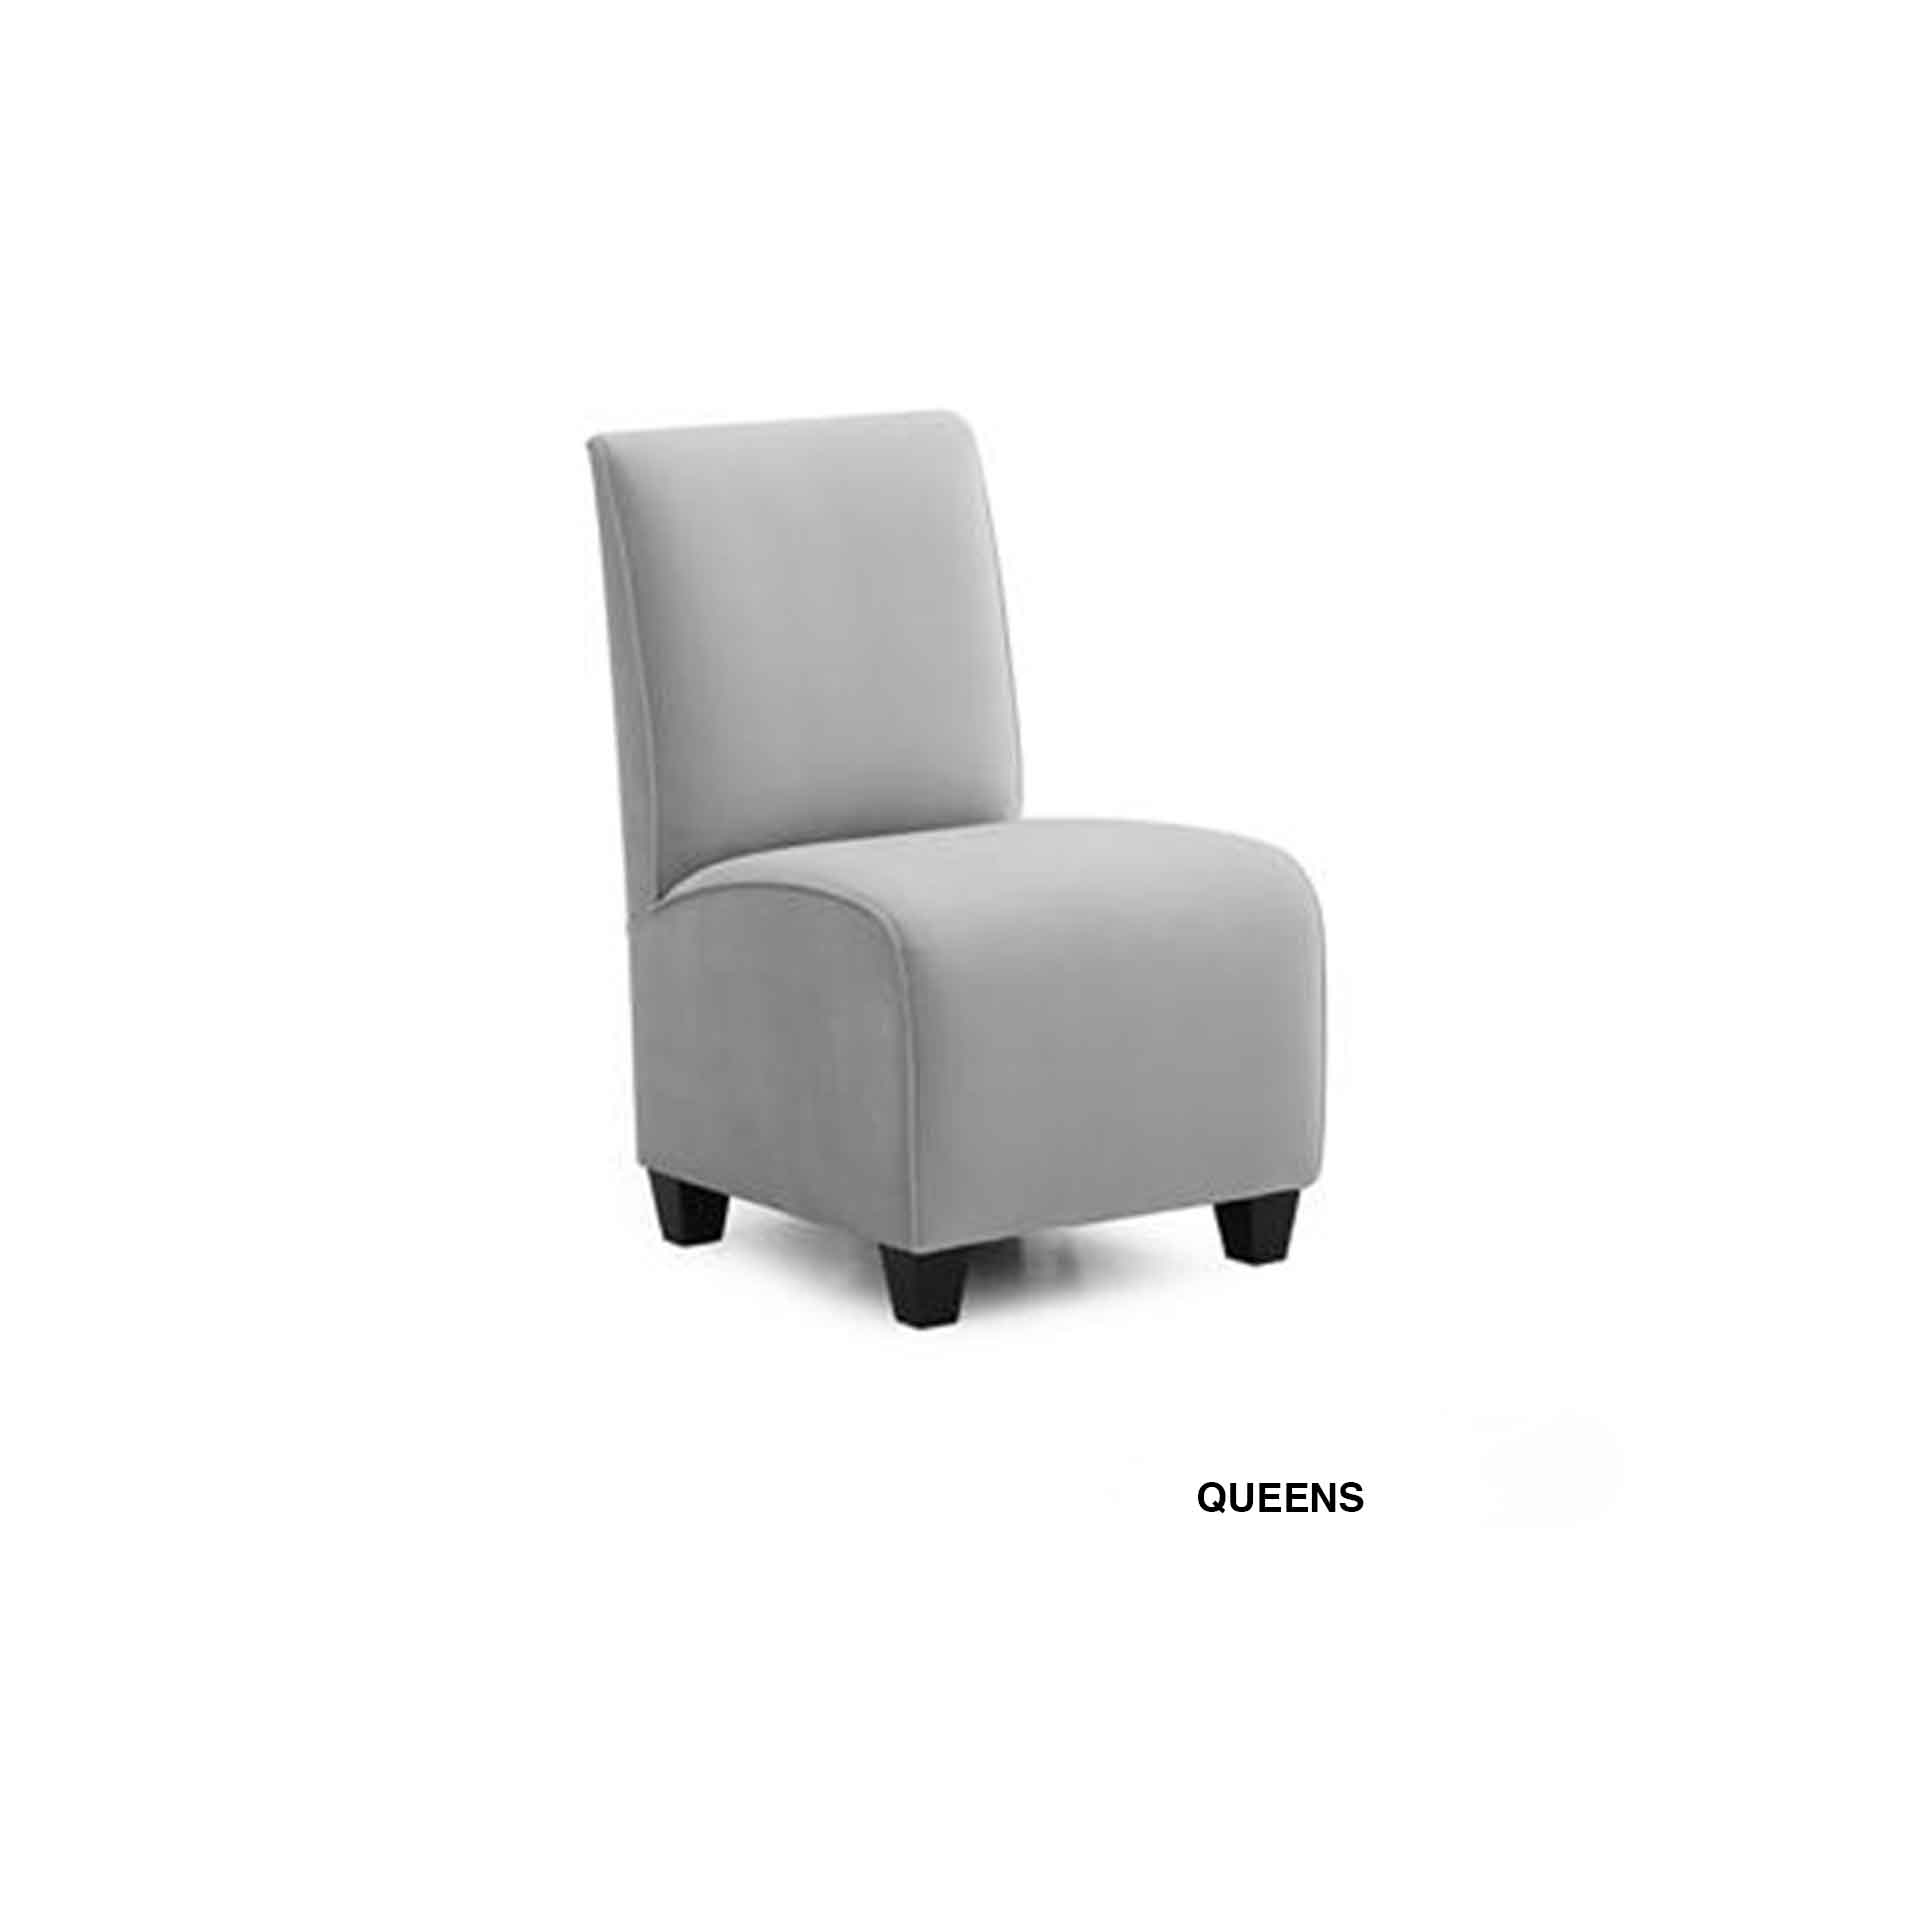 Queens Chair Art Upholstery Contract